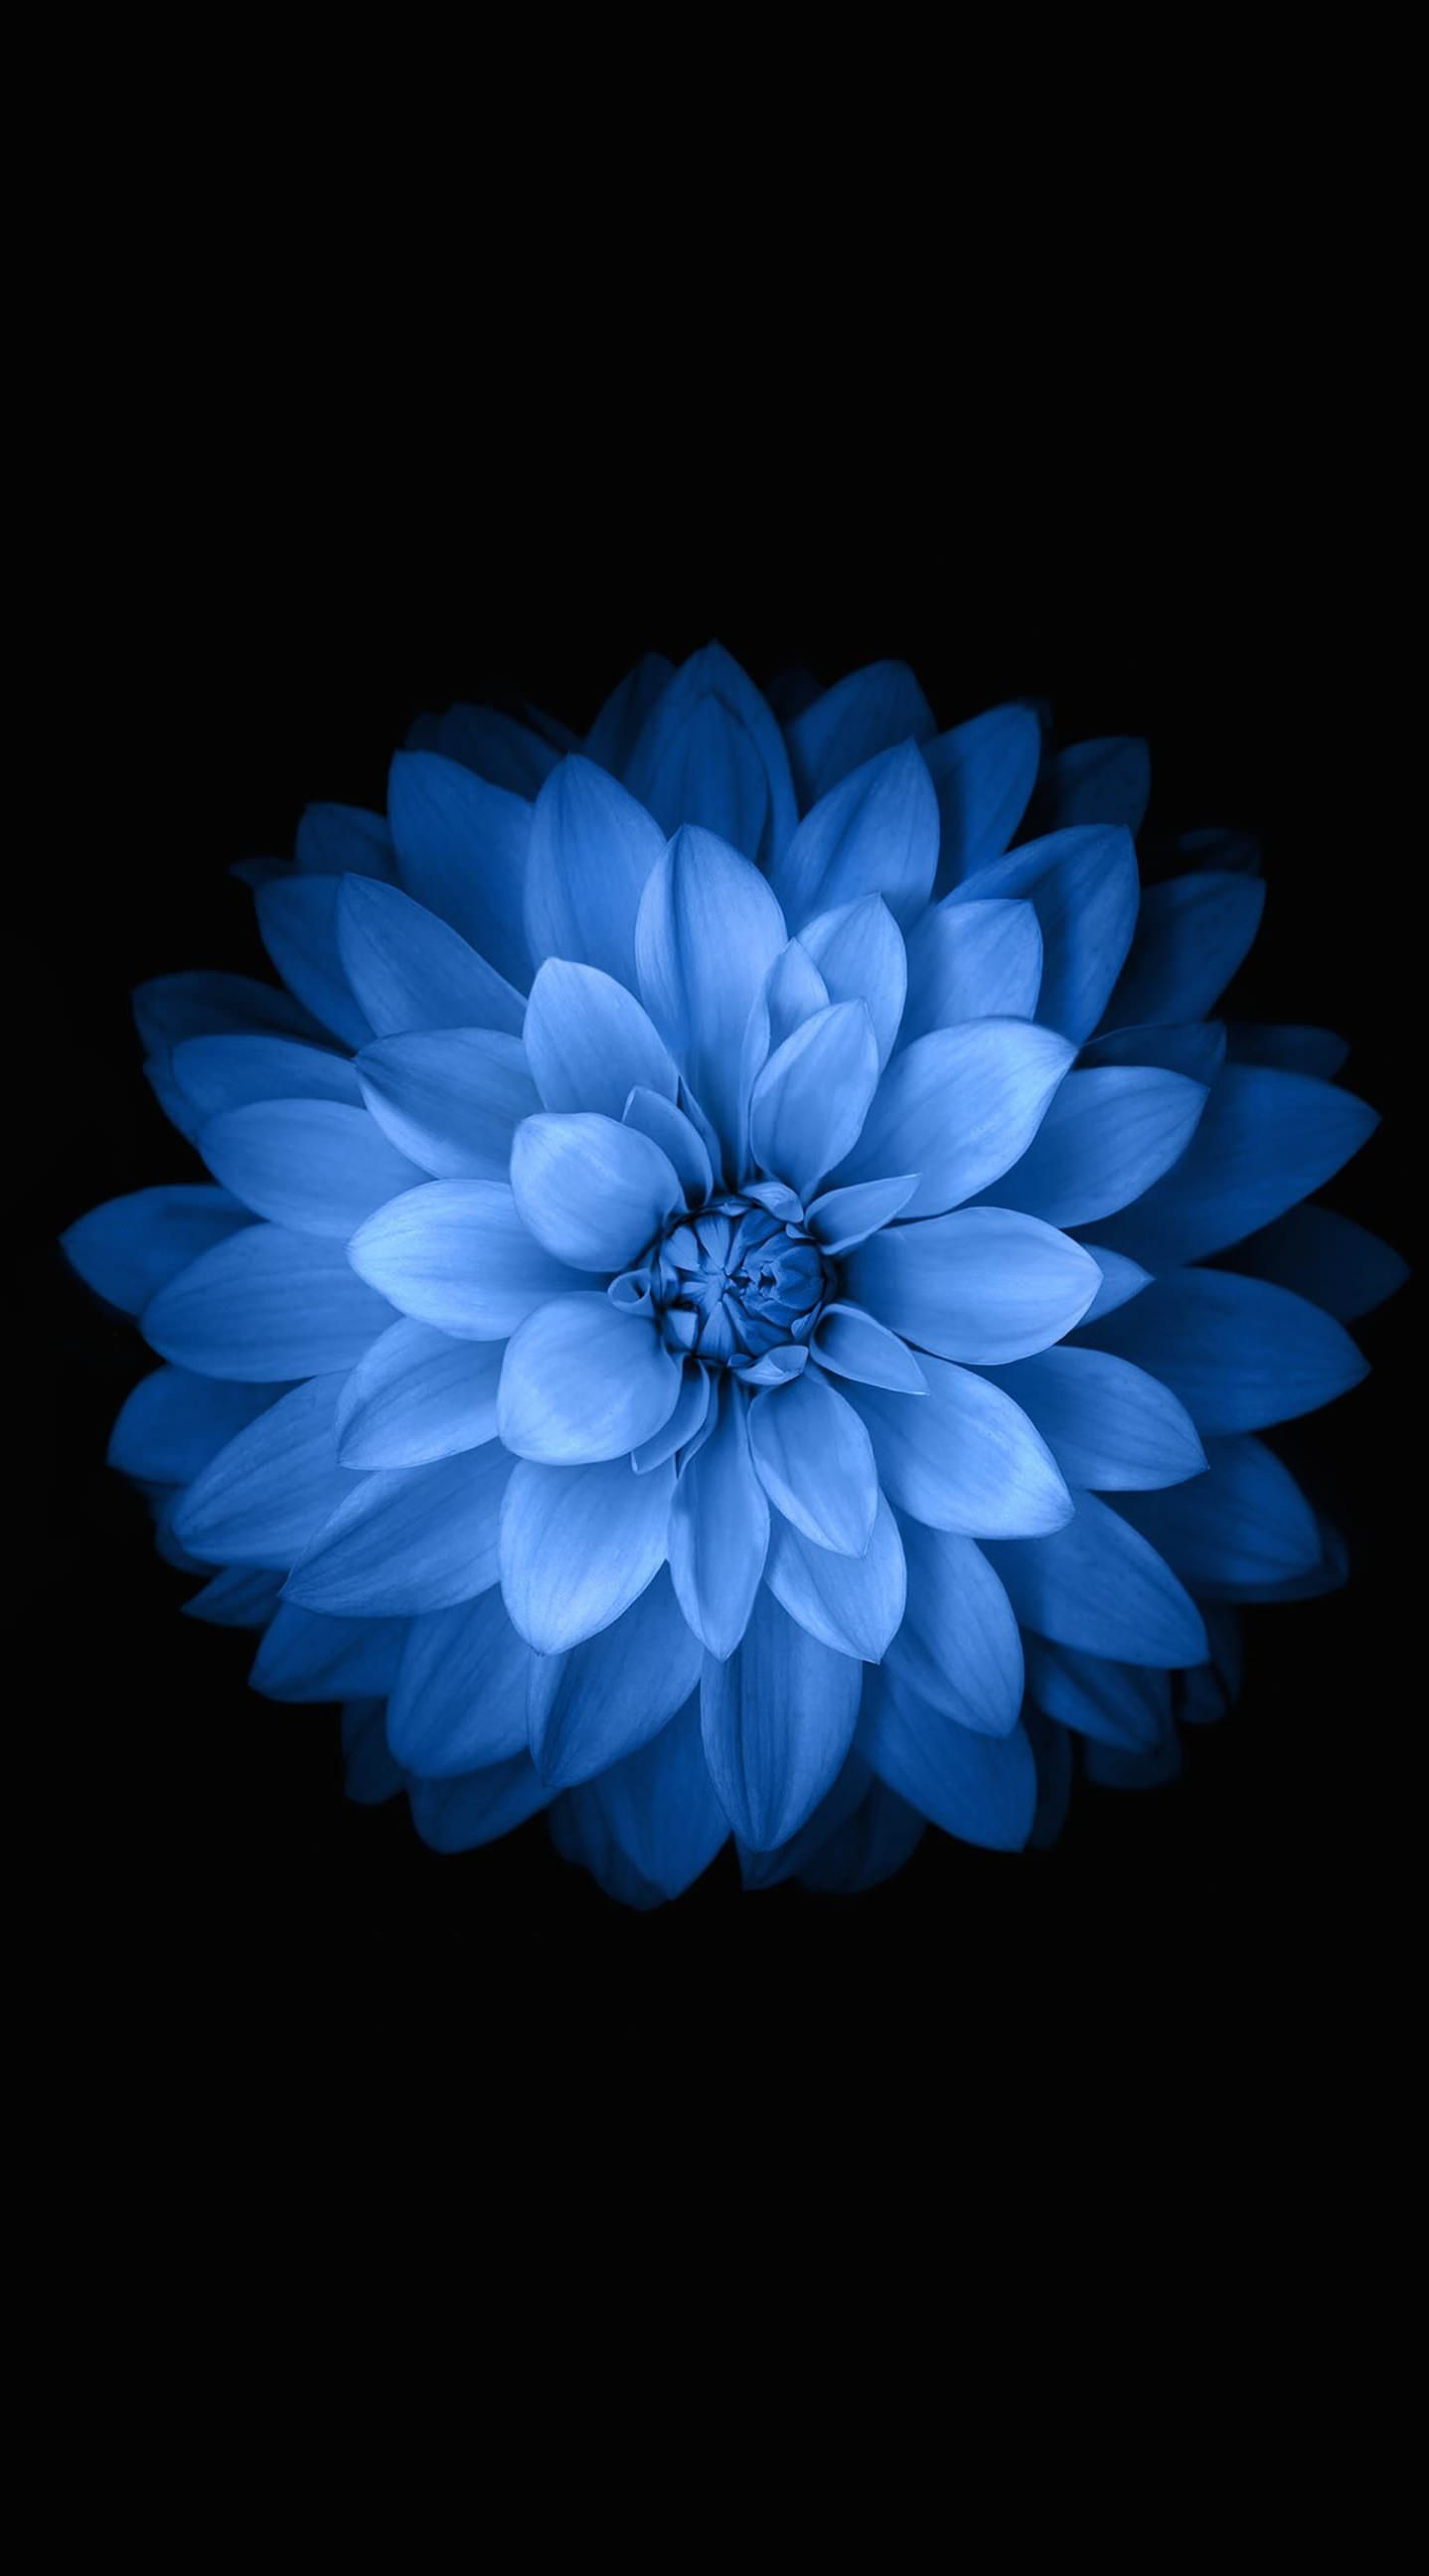 Iphone Flower Wallpaper Flower iphone wallpaper, Blue